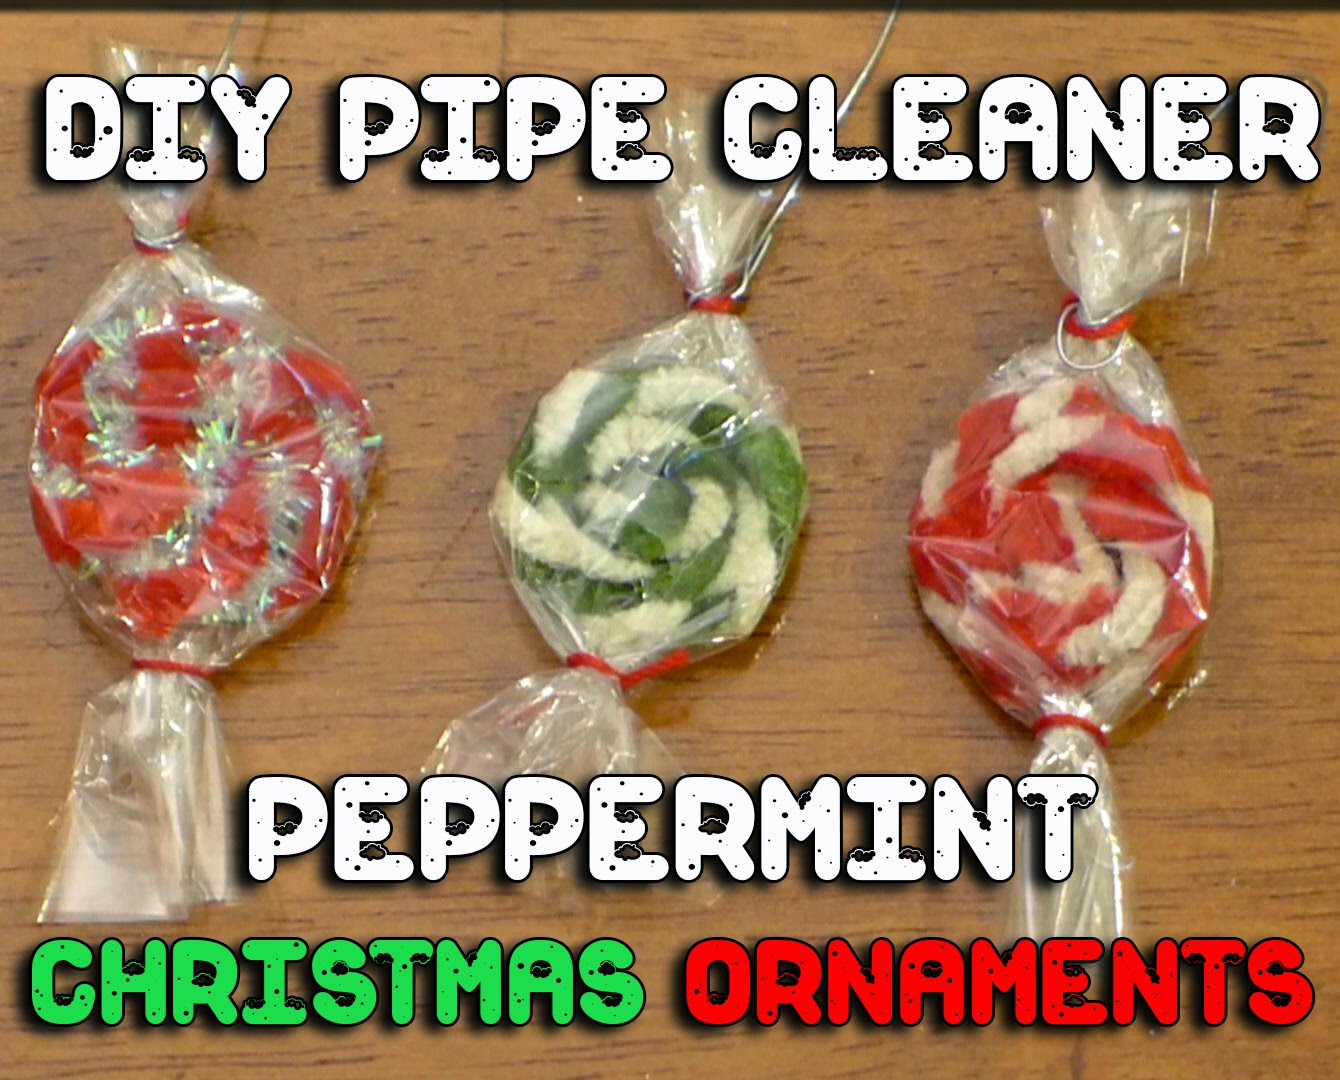 EasyMeWorld 3 Easy Pipe Cleaner Christmas Ornaments